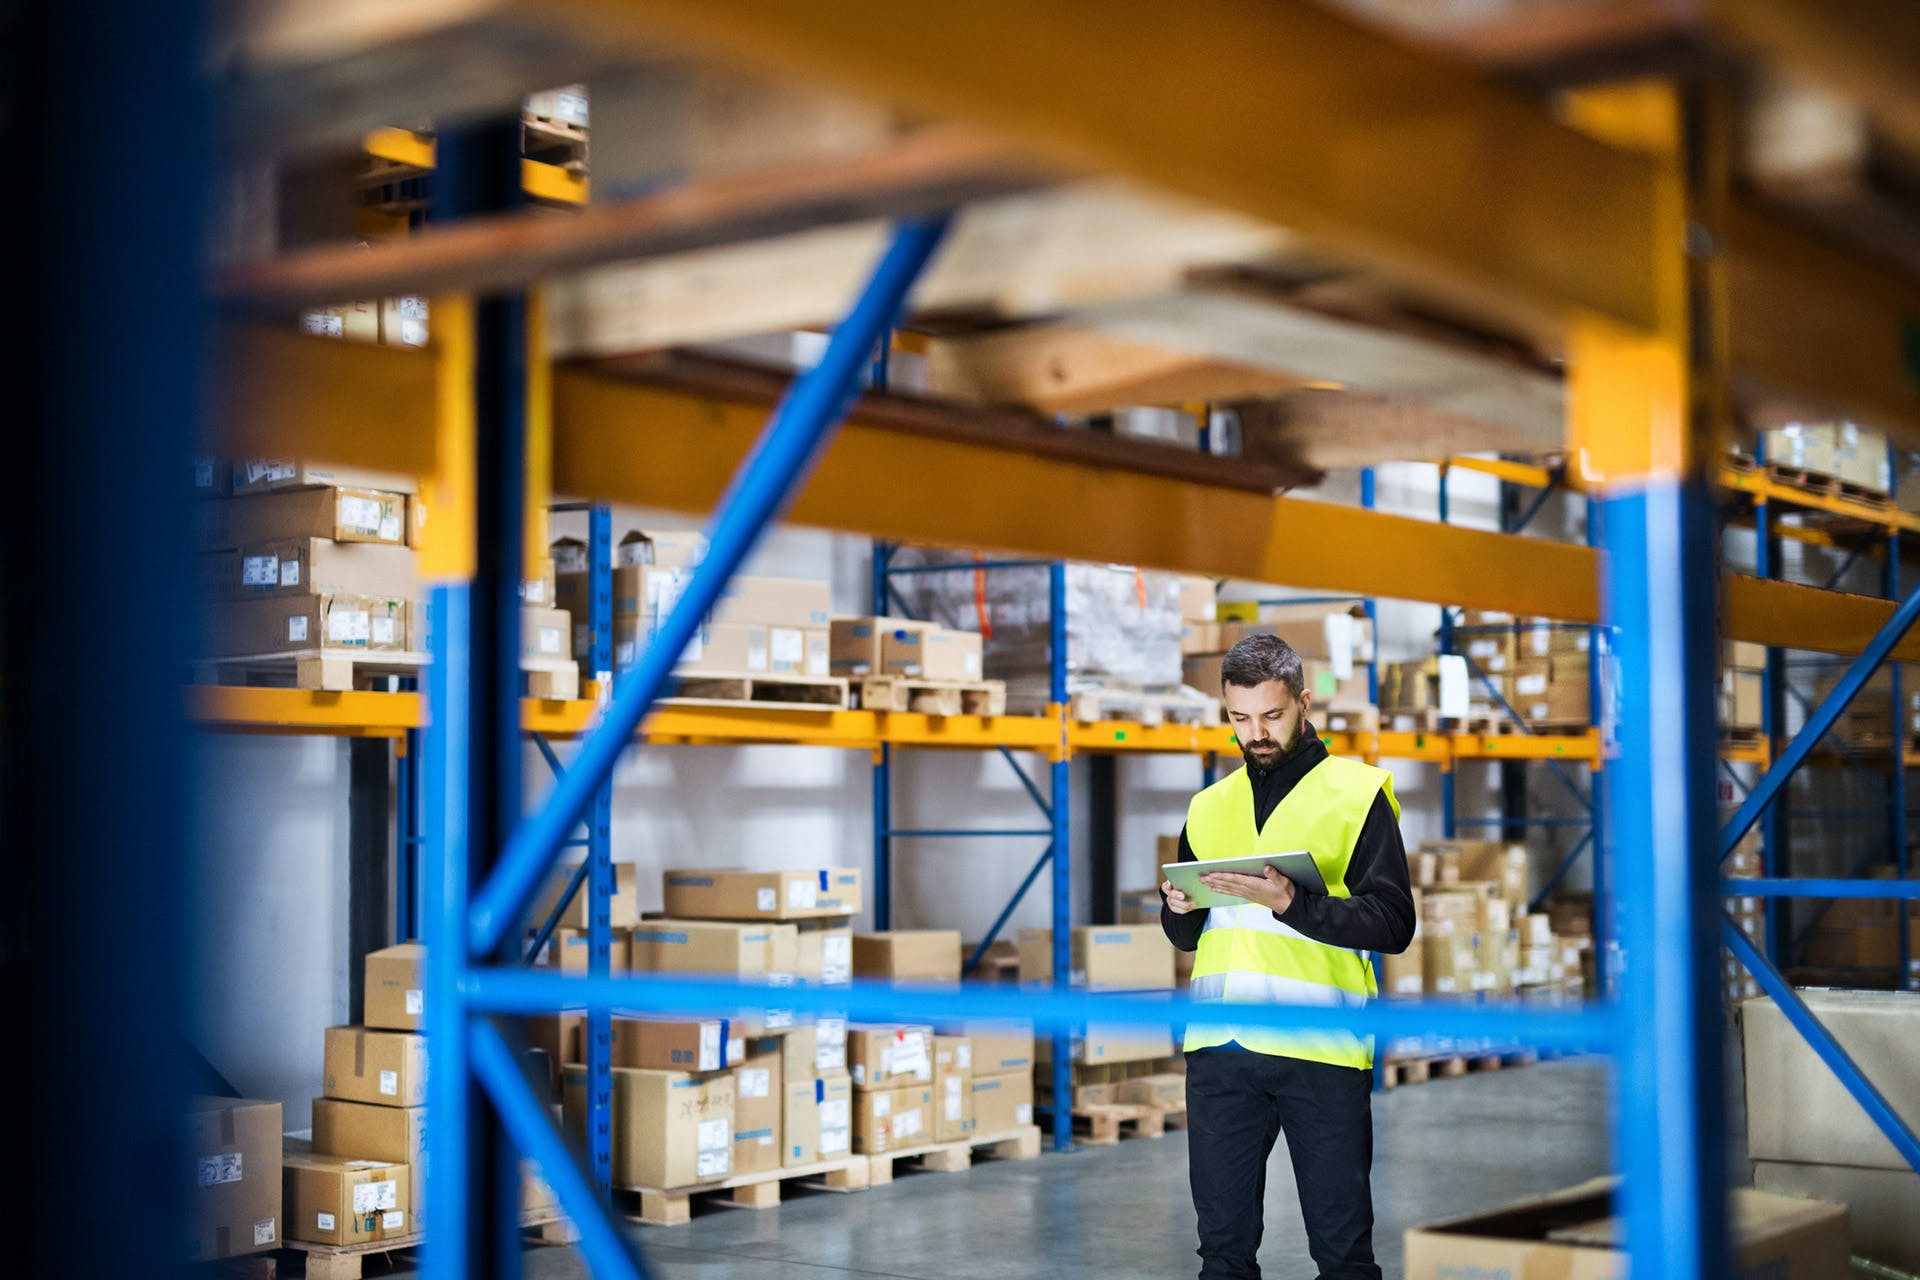 An employee in a yellow safety vest in a high-bay warehouse